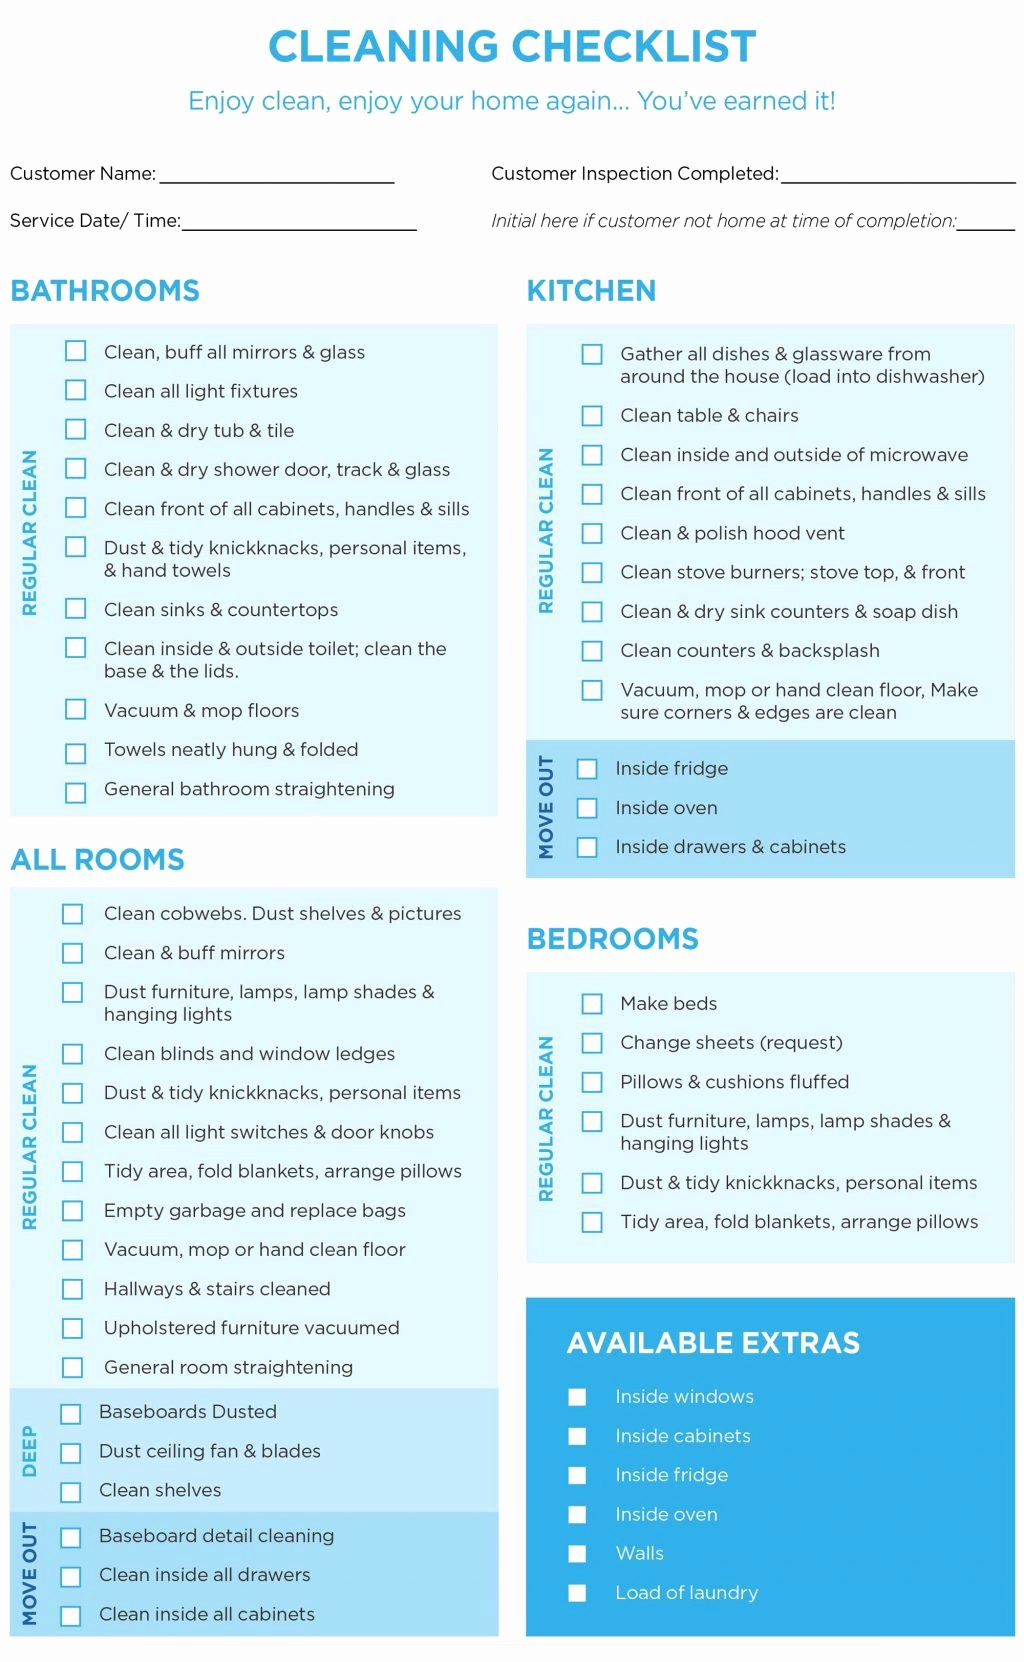 Professional House Cleaning Checklist Template Best Of 40 Helpful House Cleaning Checklists for You